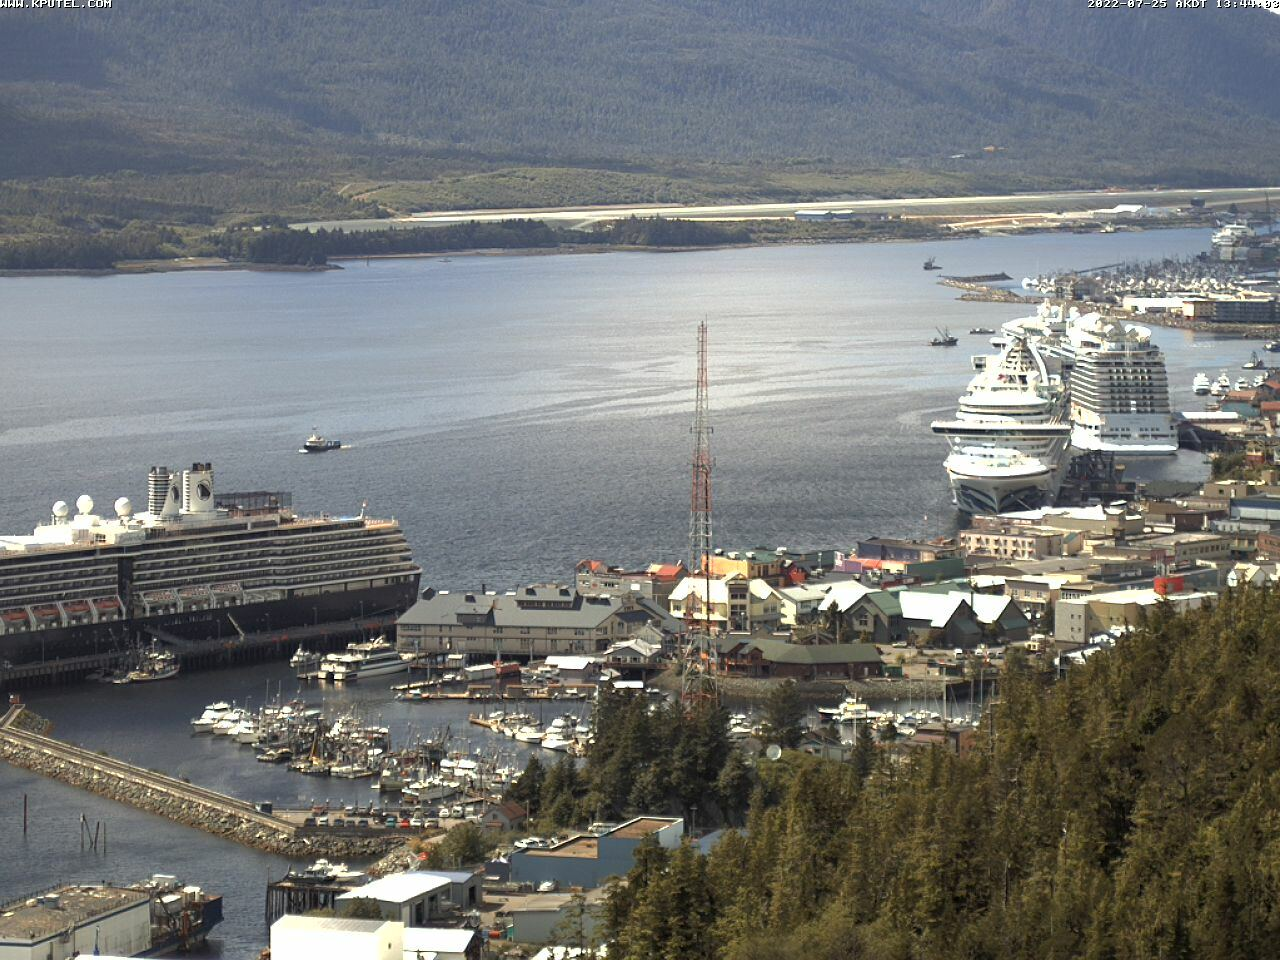 Current Ketchikan Webcam #7 Alaska-sized Image